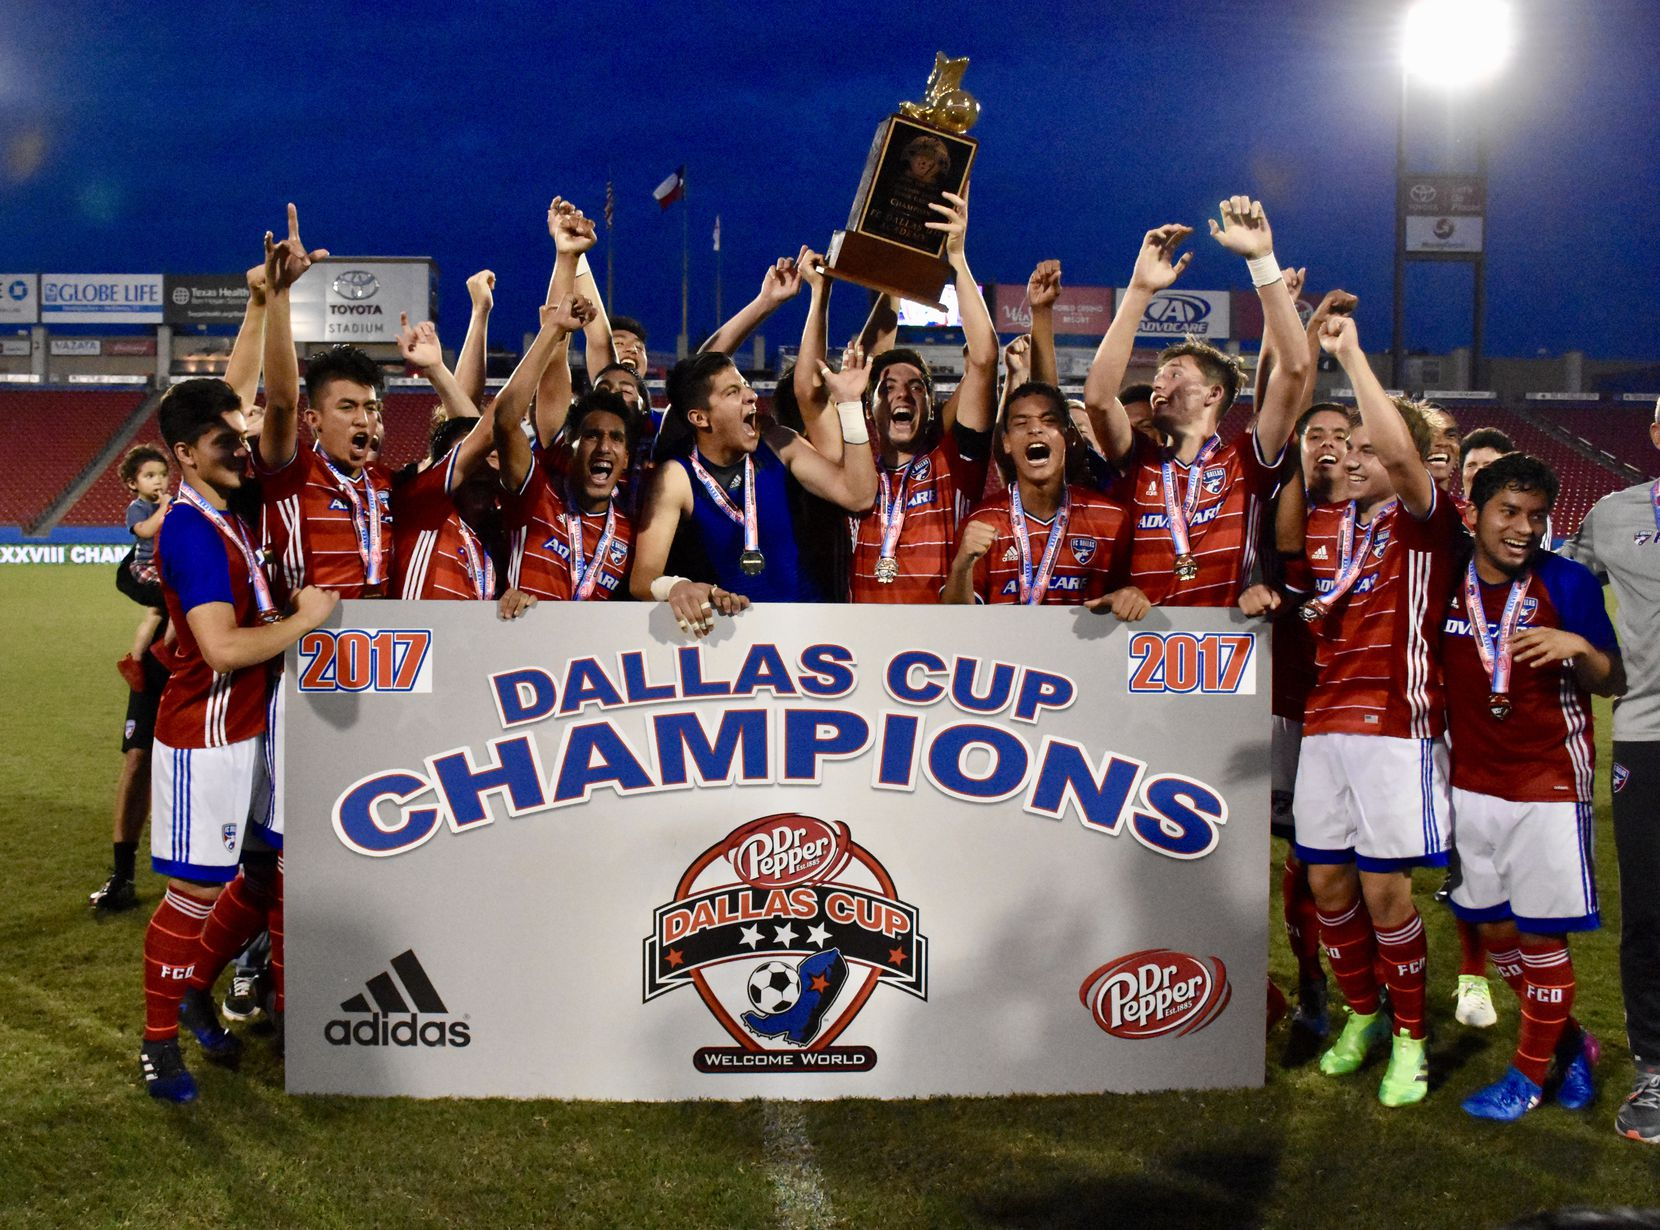 FC Dallas hoists the 2017 Dallas Cup Super Group trophy.  They were the 2nd domestic side to win Dallas Cup's elite Super Group.